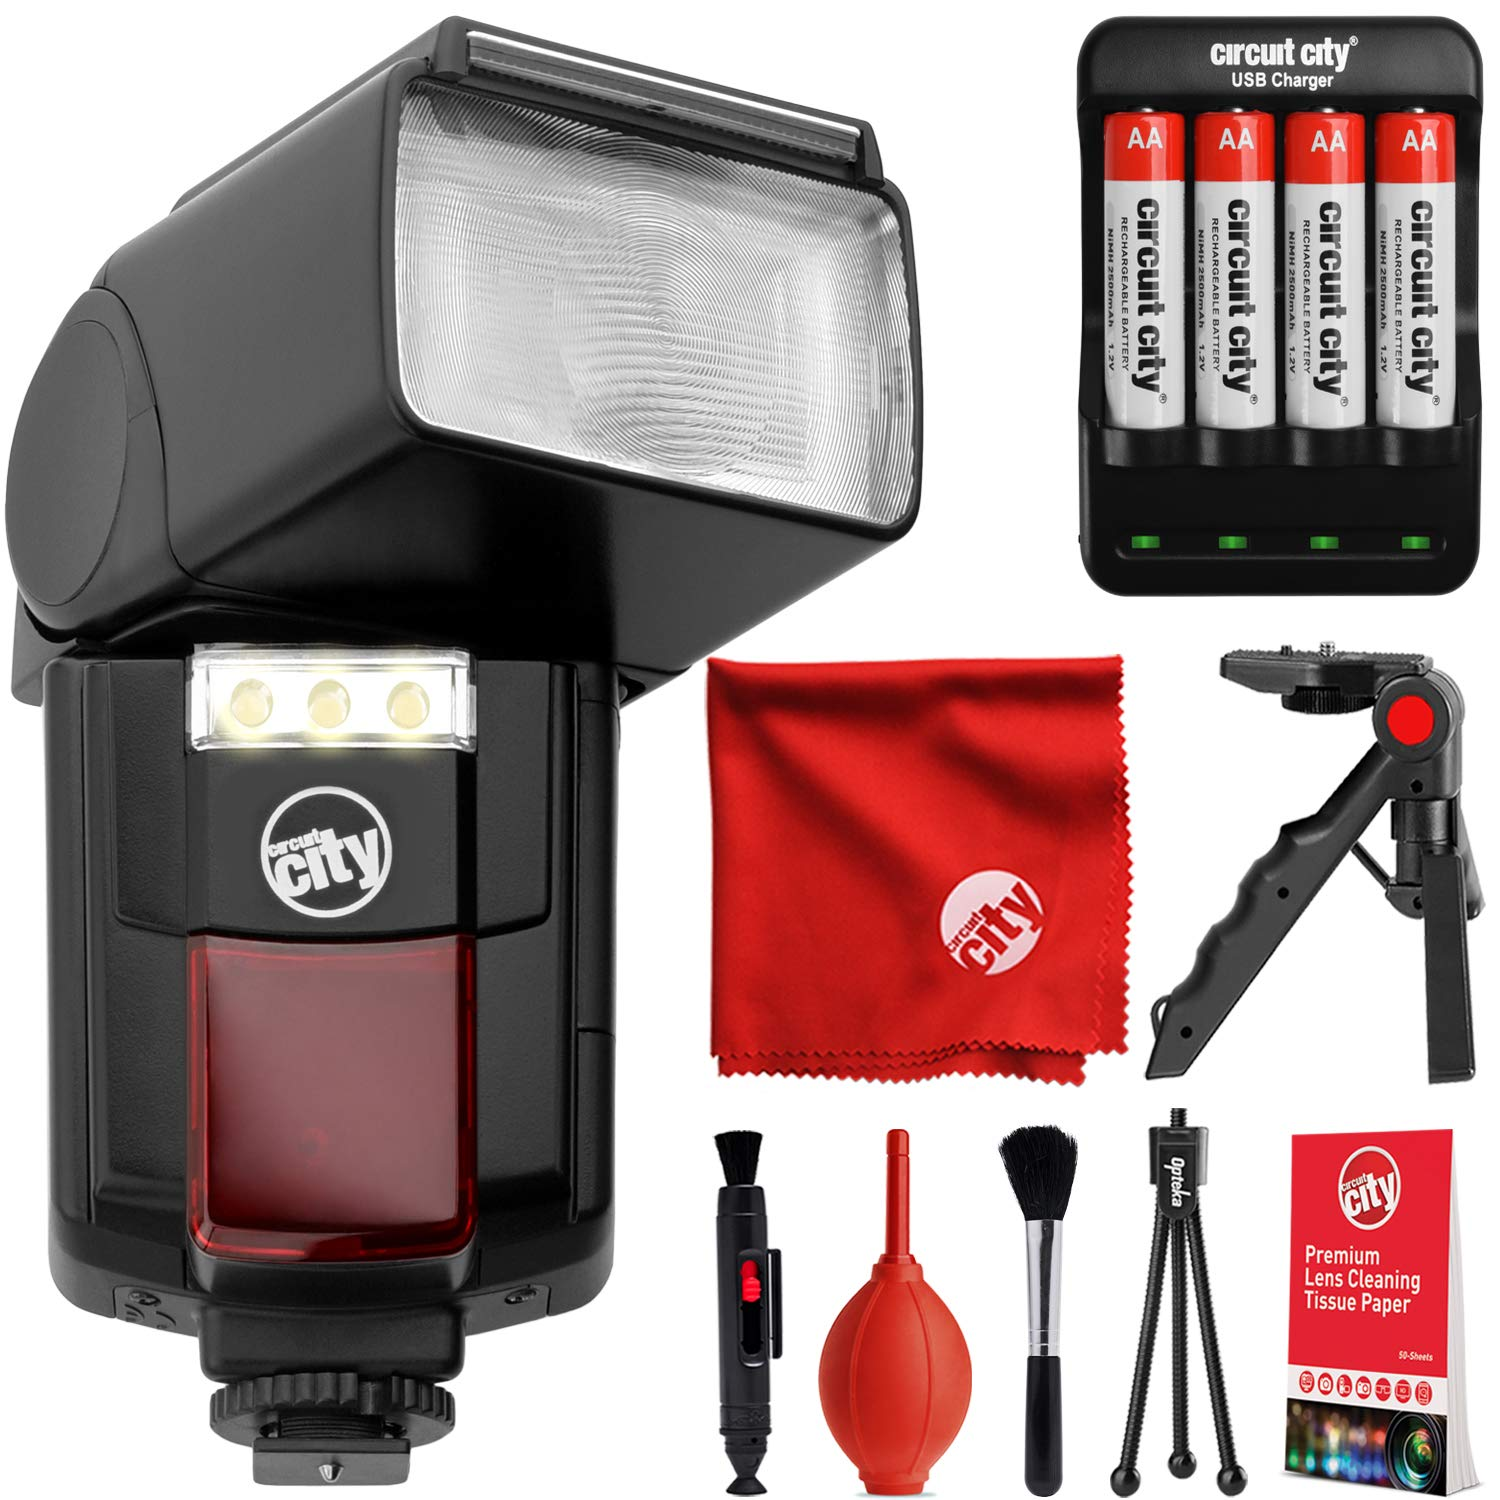 Opteka Flash IF-800 Autofocus Speedlight with Built-in LED Video Light Kit for Canon, Nikon, Pentax, Sony, Panasonic, Olympus, Samsung, Fujifilm, Ricoh DSLR and Digital Cameras with Standard Hot Shoe